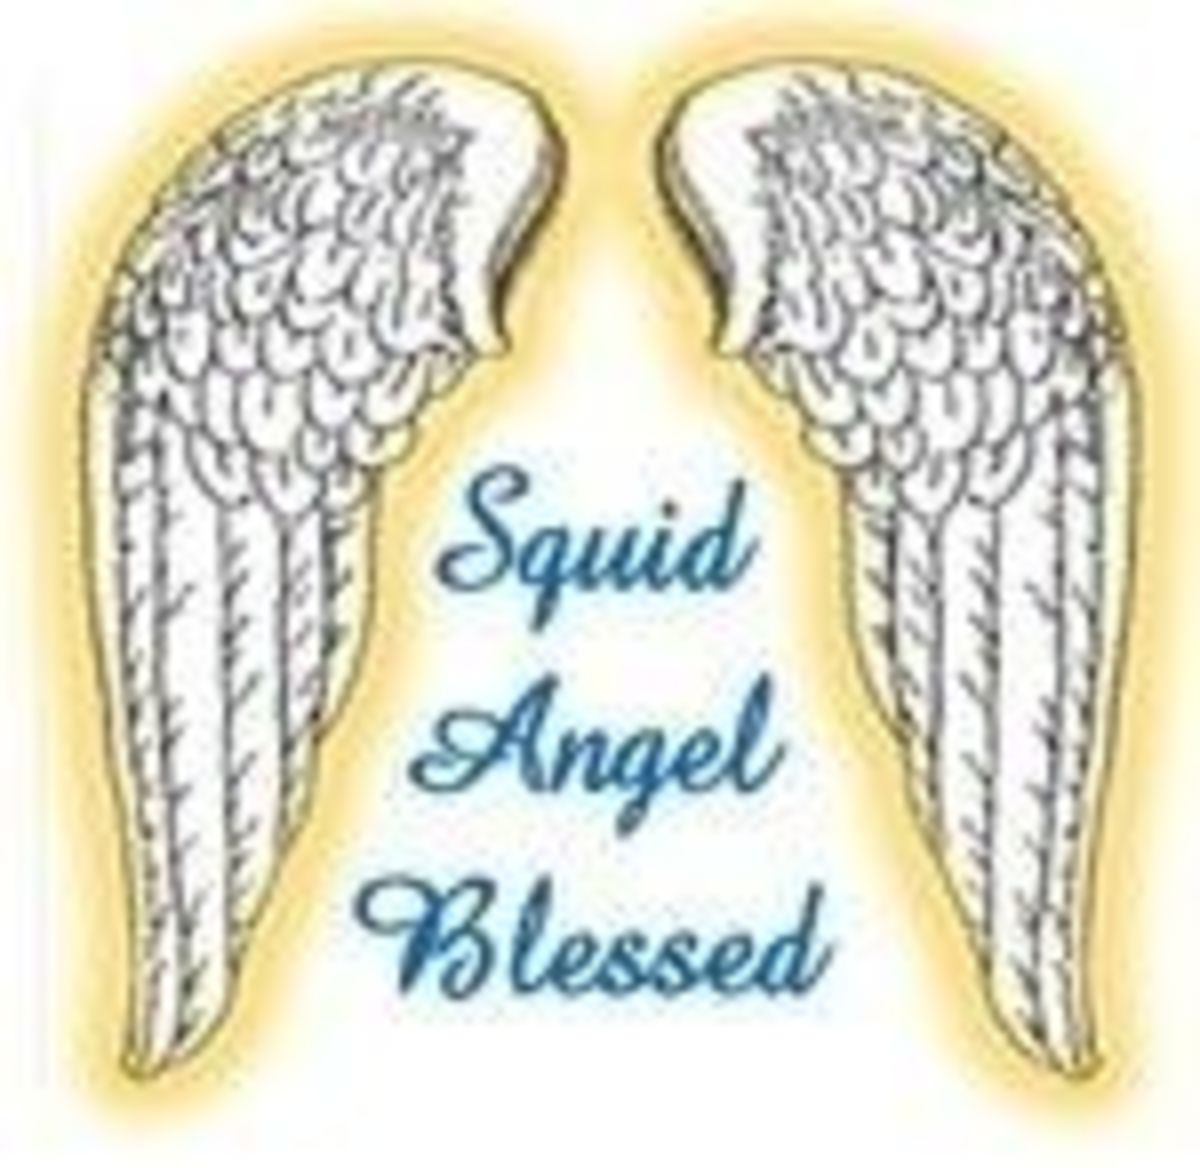 Blessed by Squid Angels